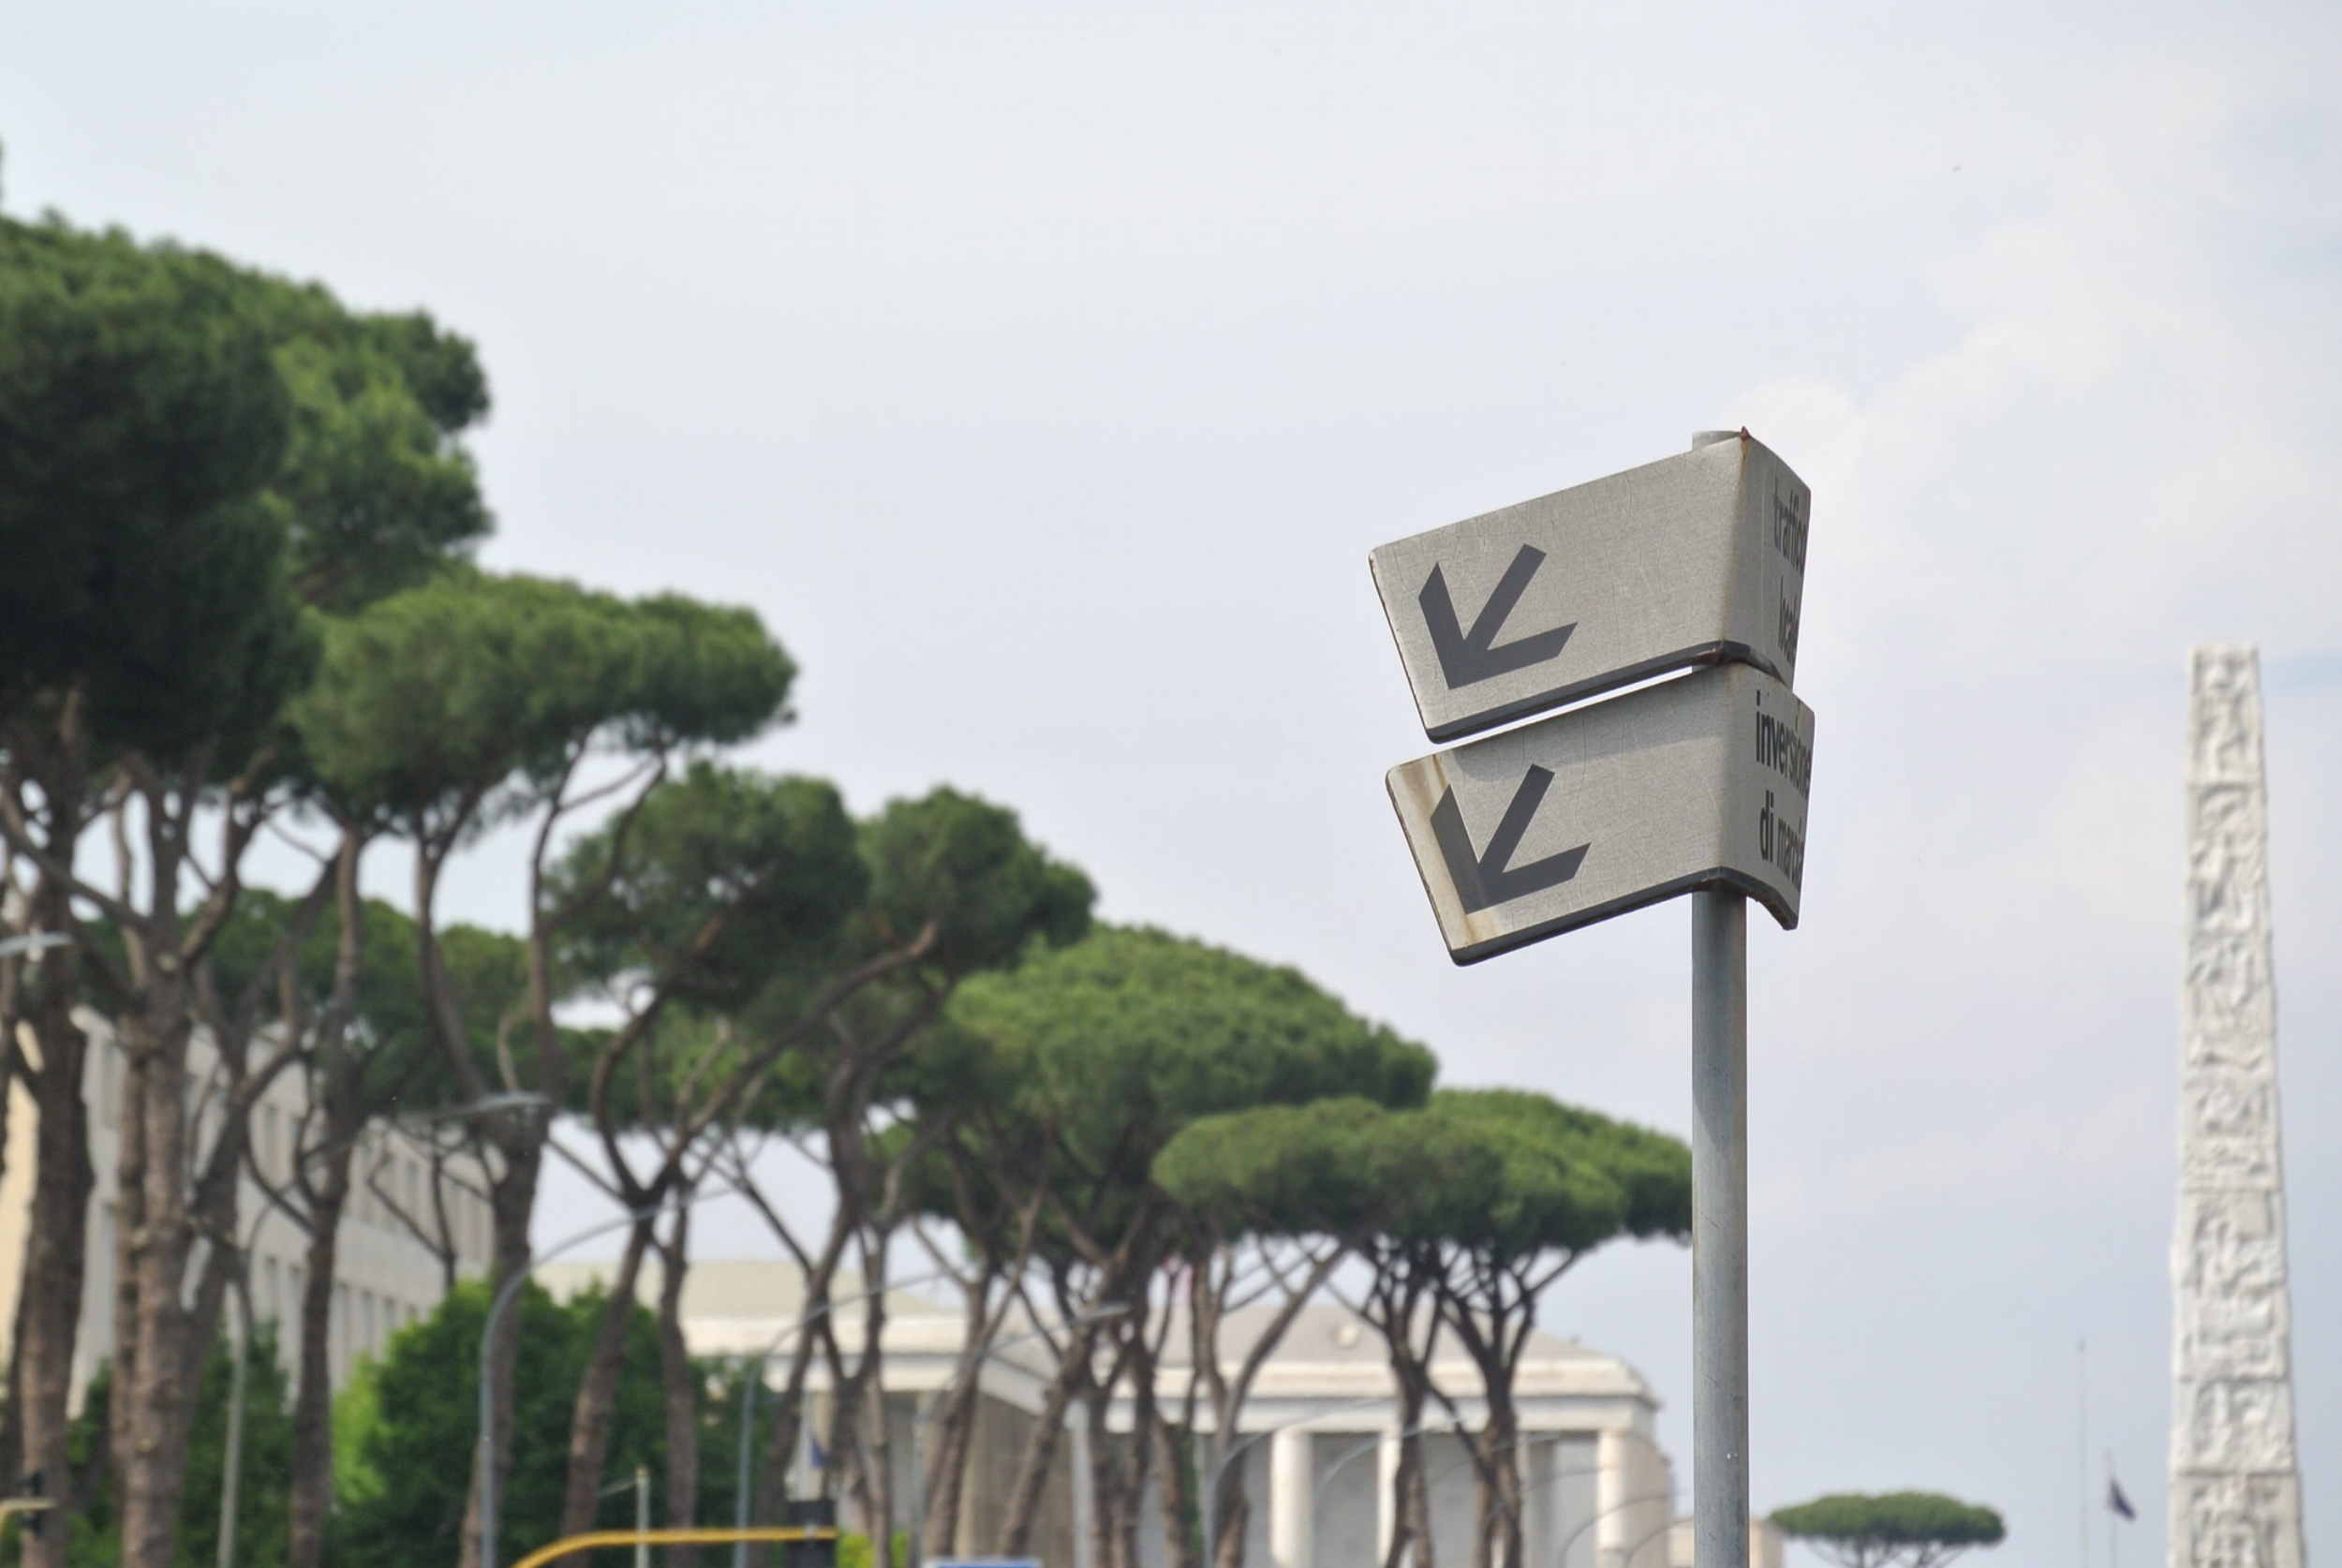 Parabolic Passages: deformed driving guides through the circular space colony. Rome, EUR; May 2018. ©Pamela Kerpius